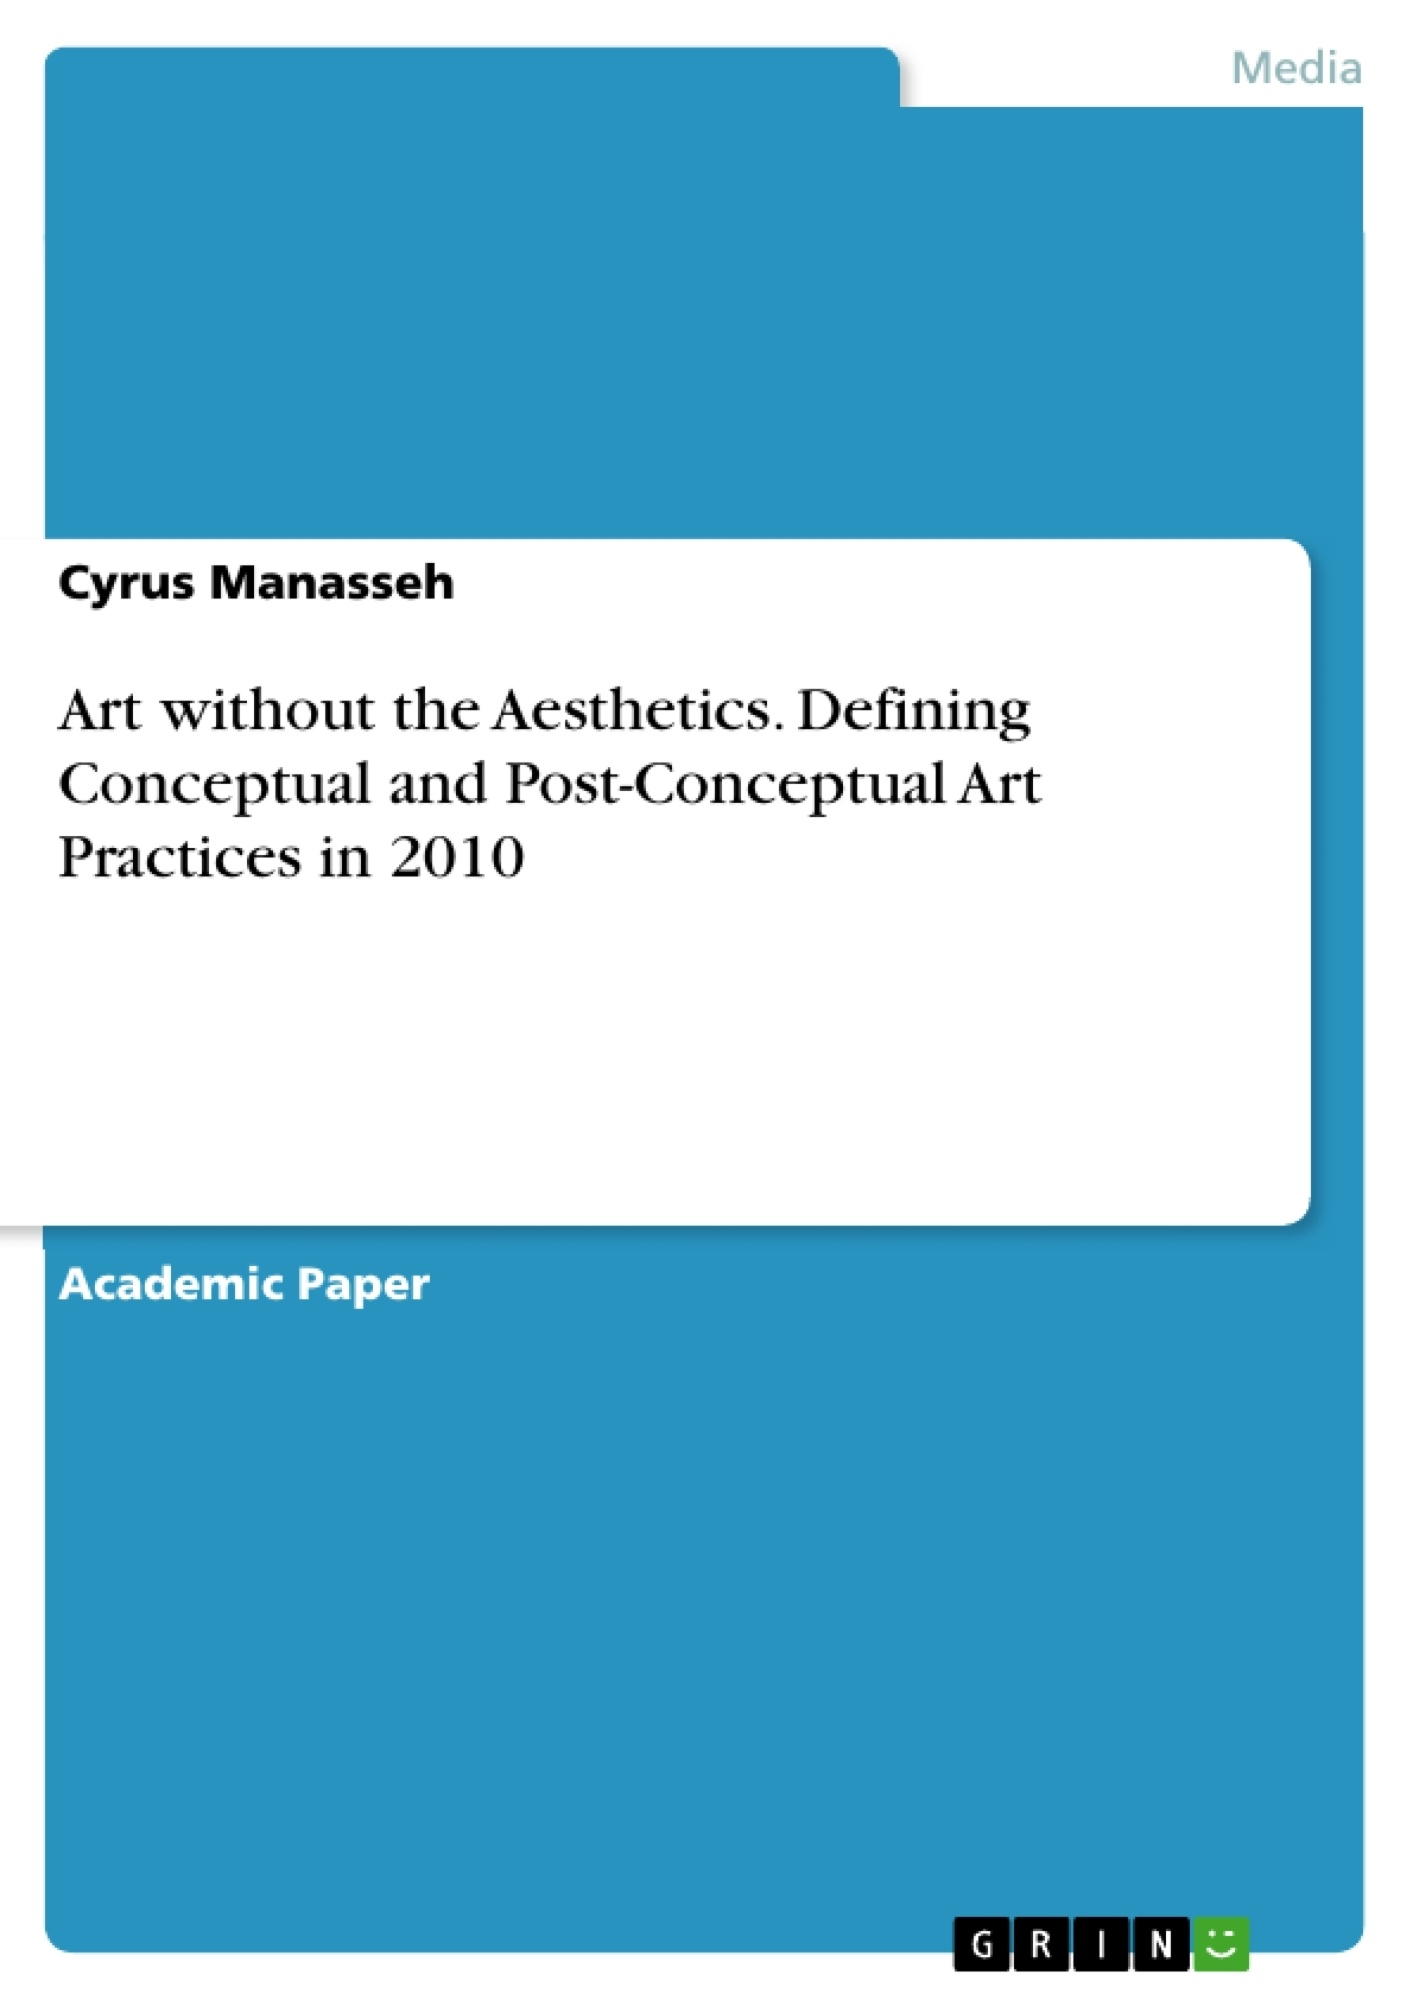 Title: Art without the Aesthetics. Defining Conceptual and Post-Conceptual Art Practices in 2010